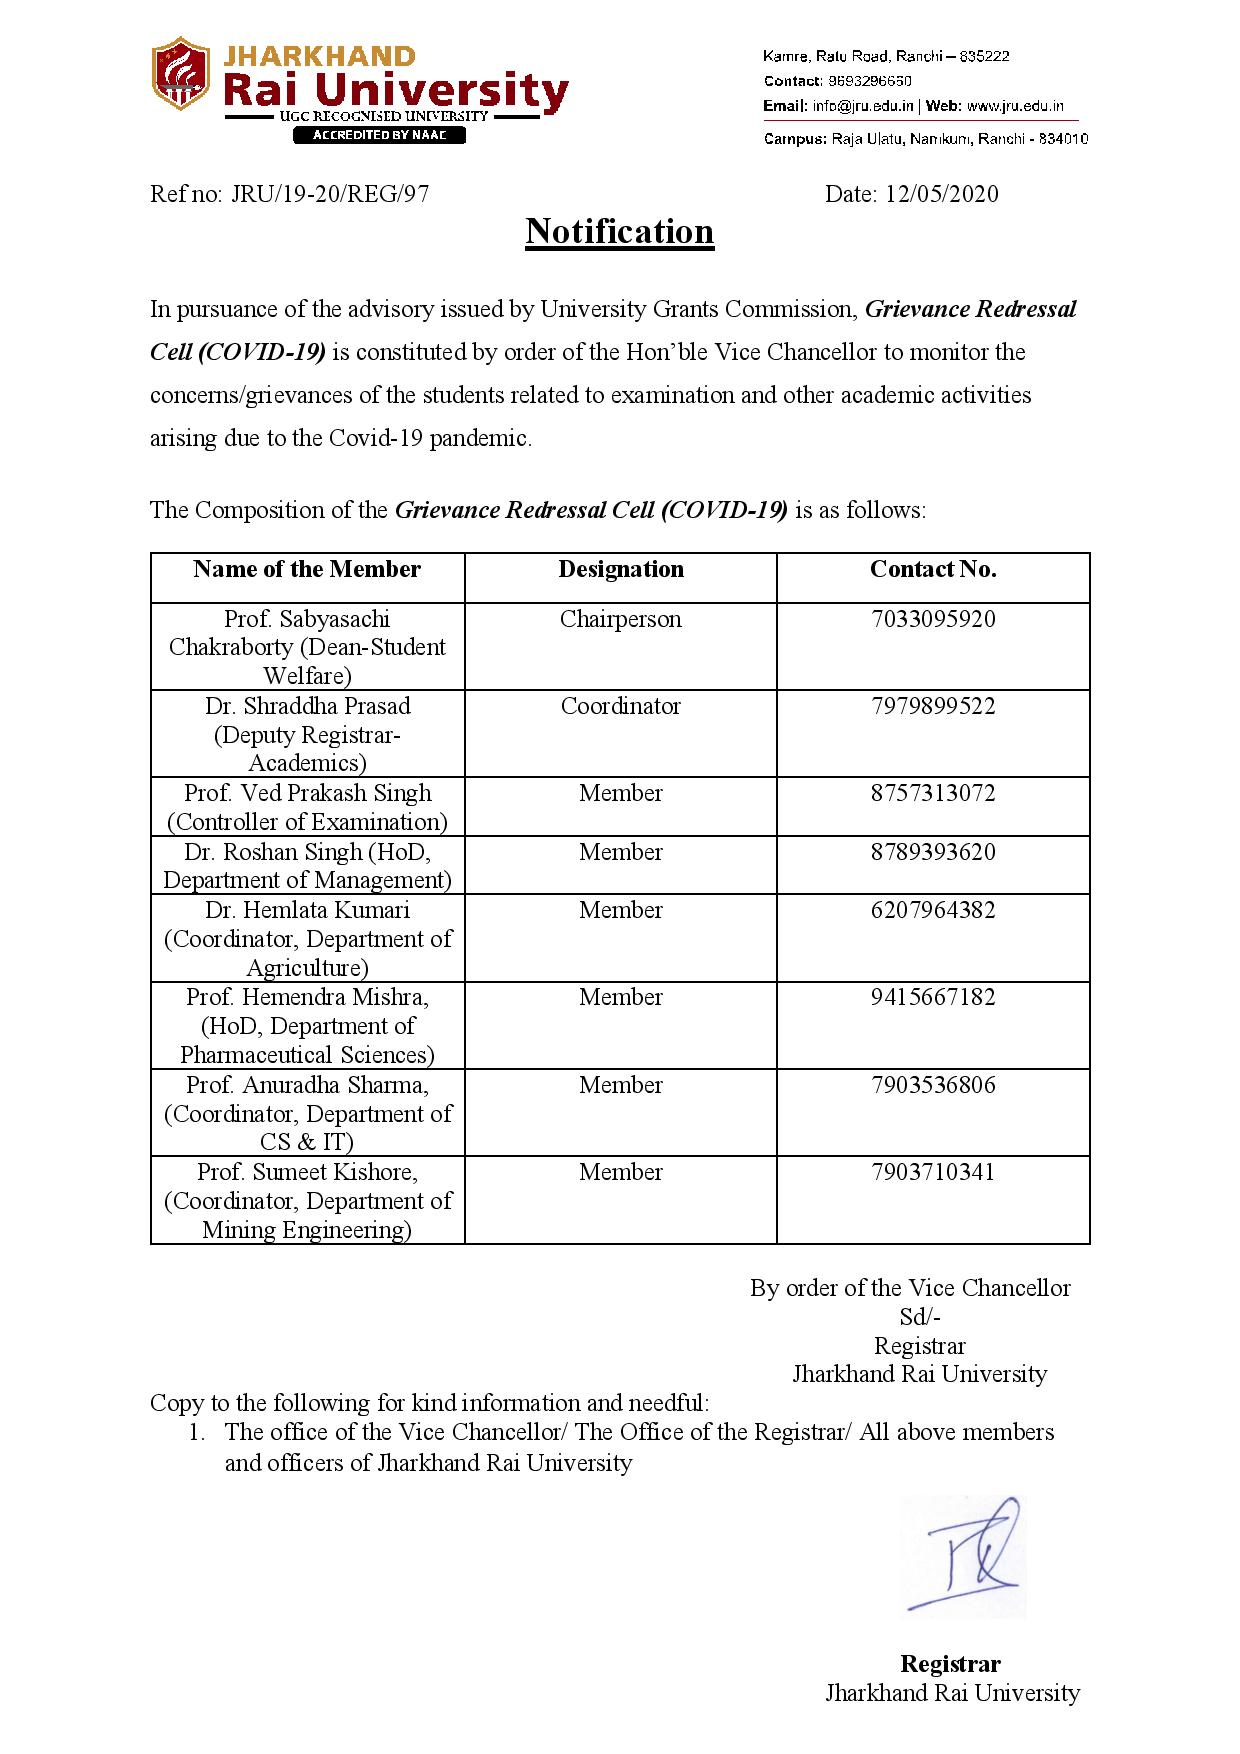 Grievance Redressal Cell for COVID-19-1